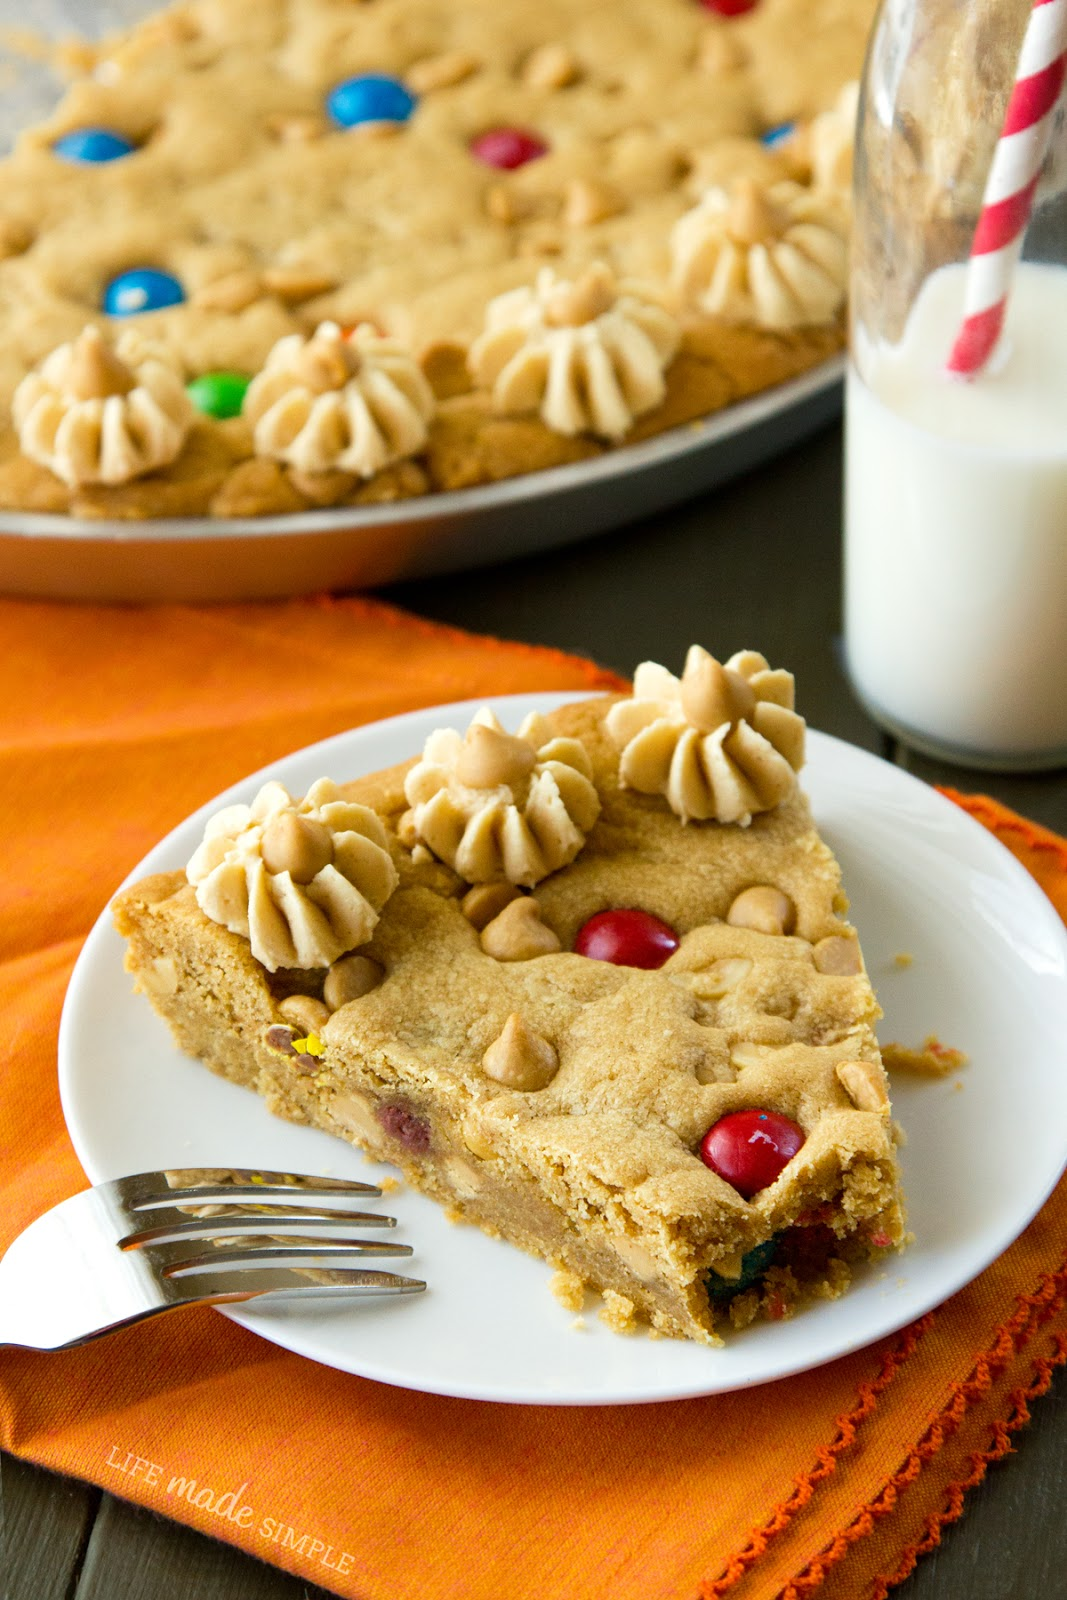 Life Made Simple: The Ultimate Peanut Butter Cookie Cake